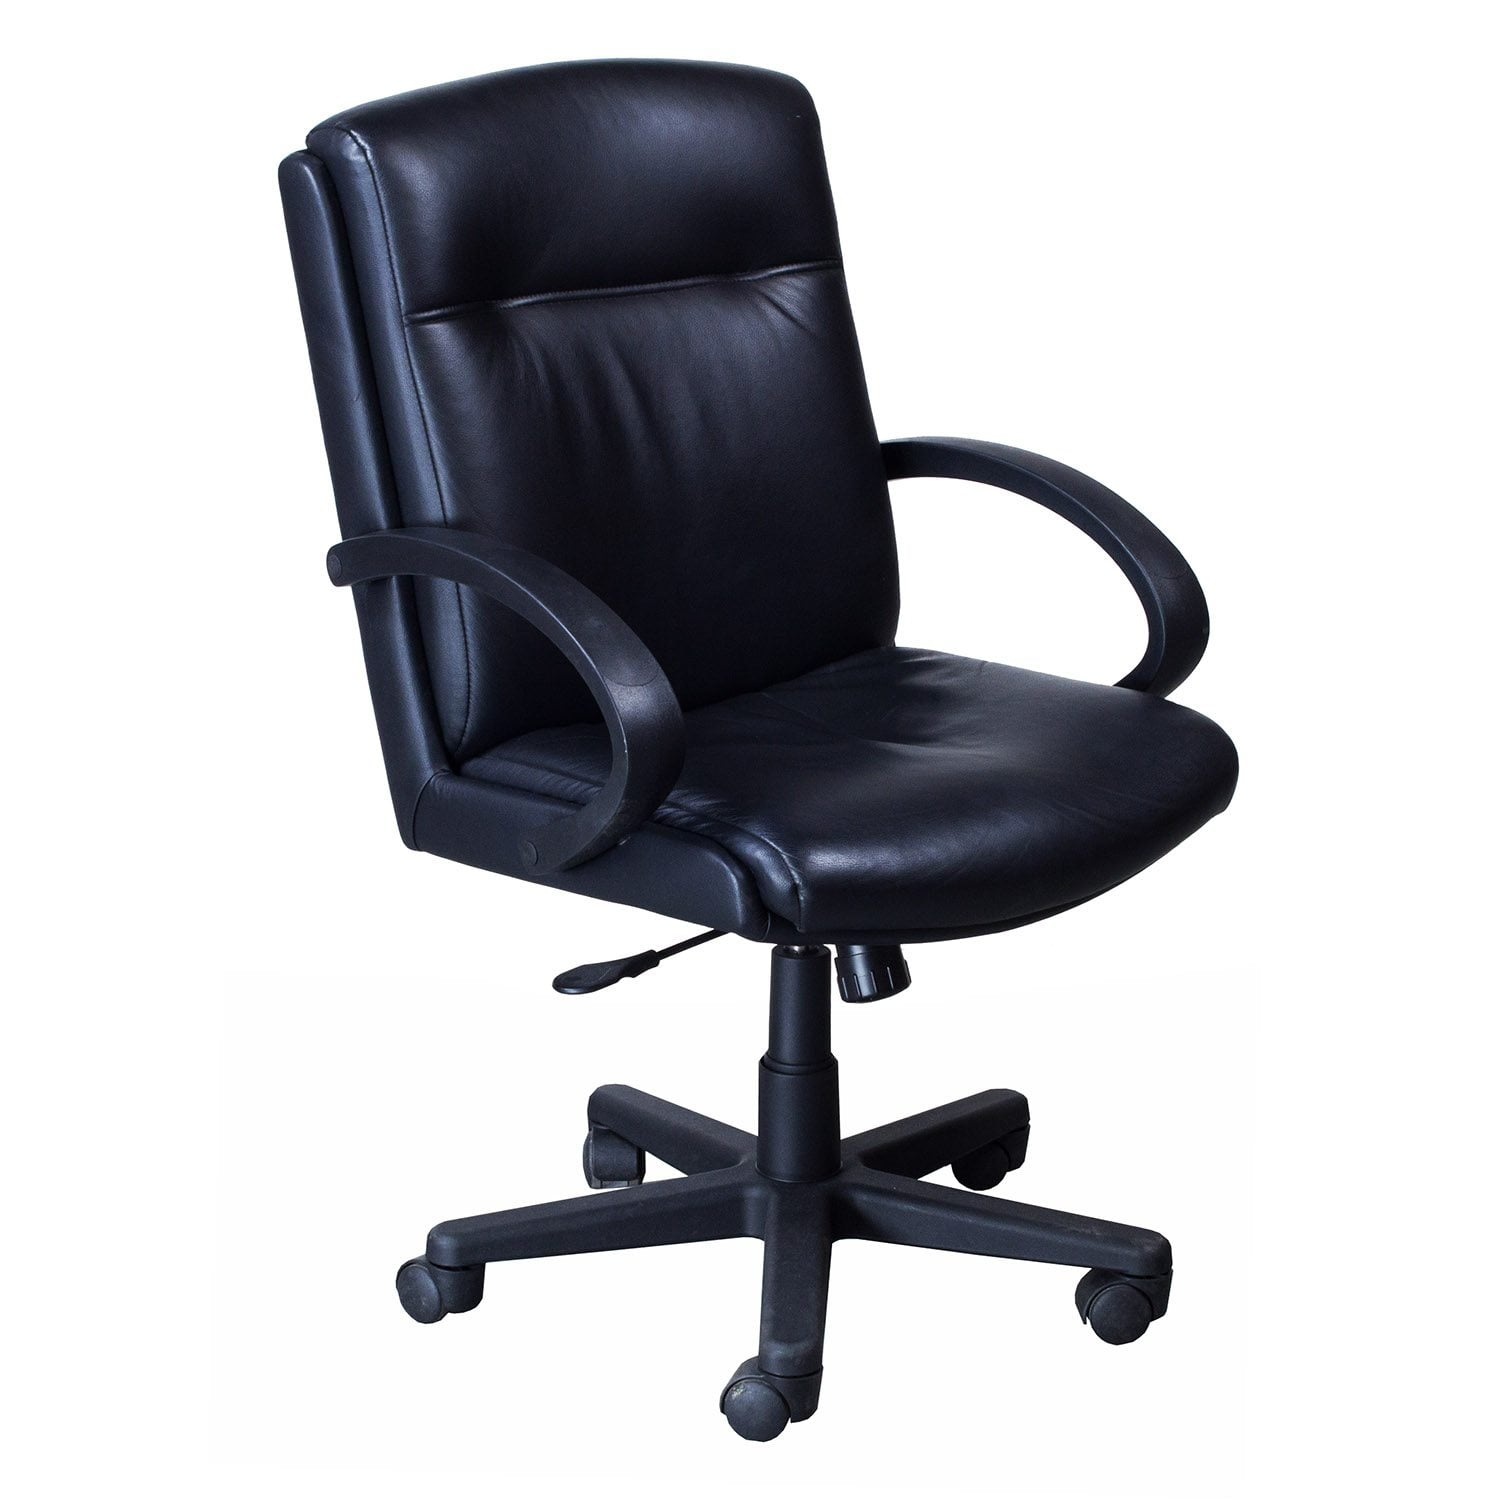 Chairs steelcase turnstone used leather conference chair black